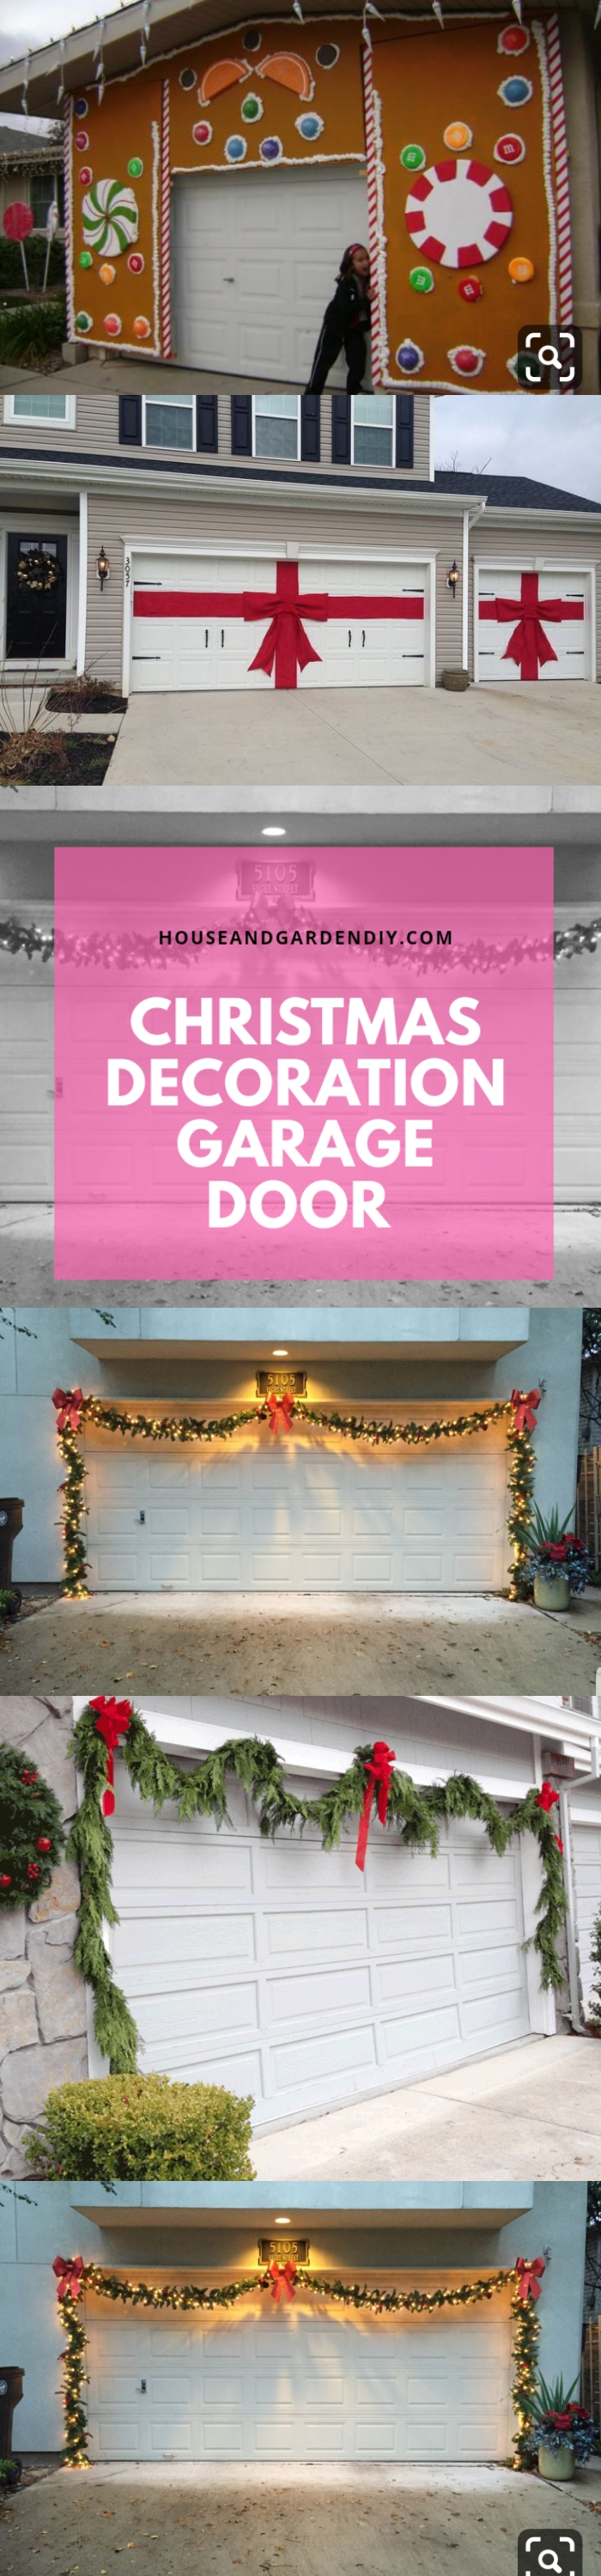 christmas garage door ideas